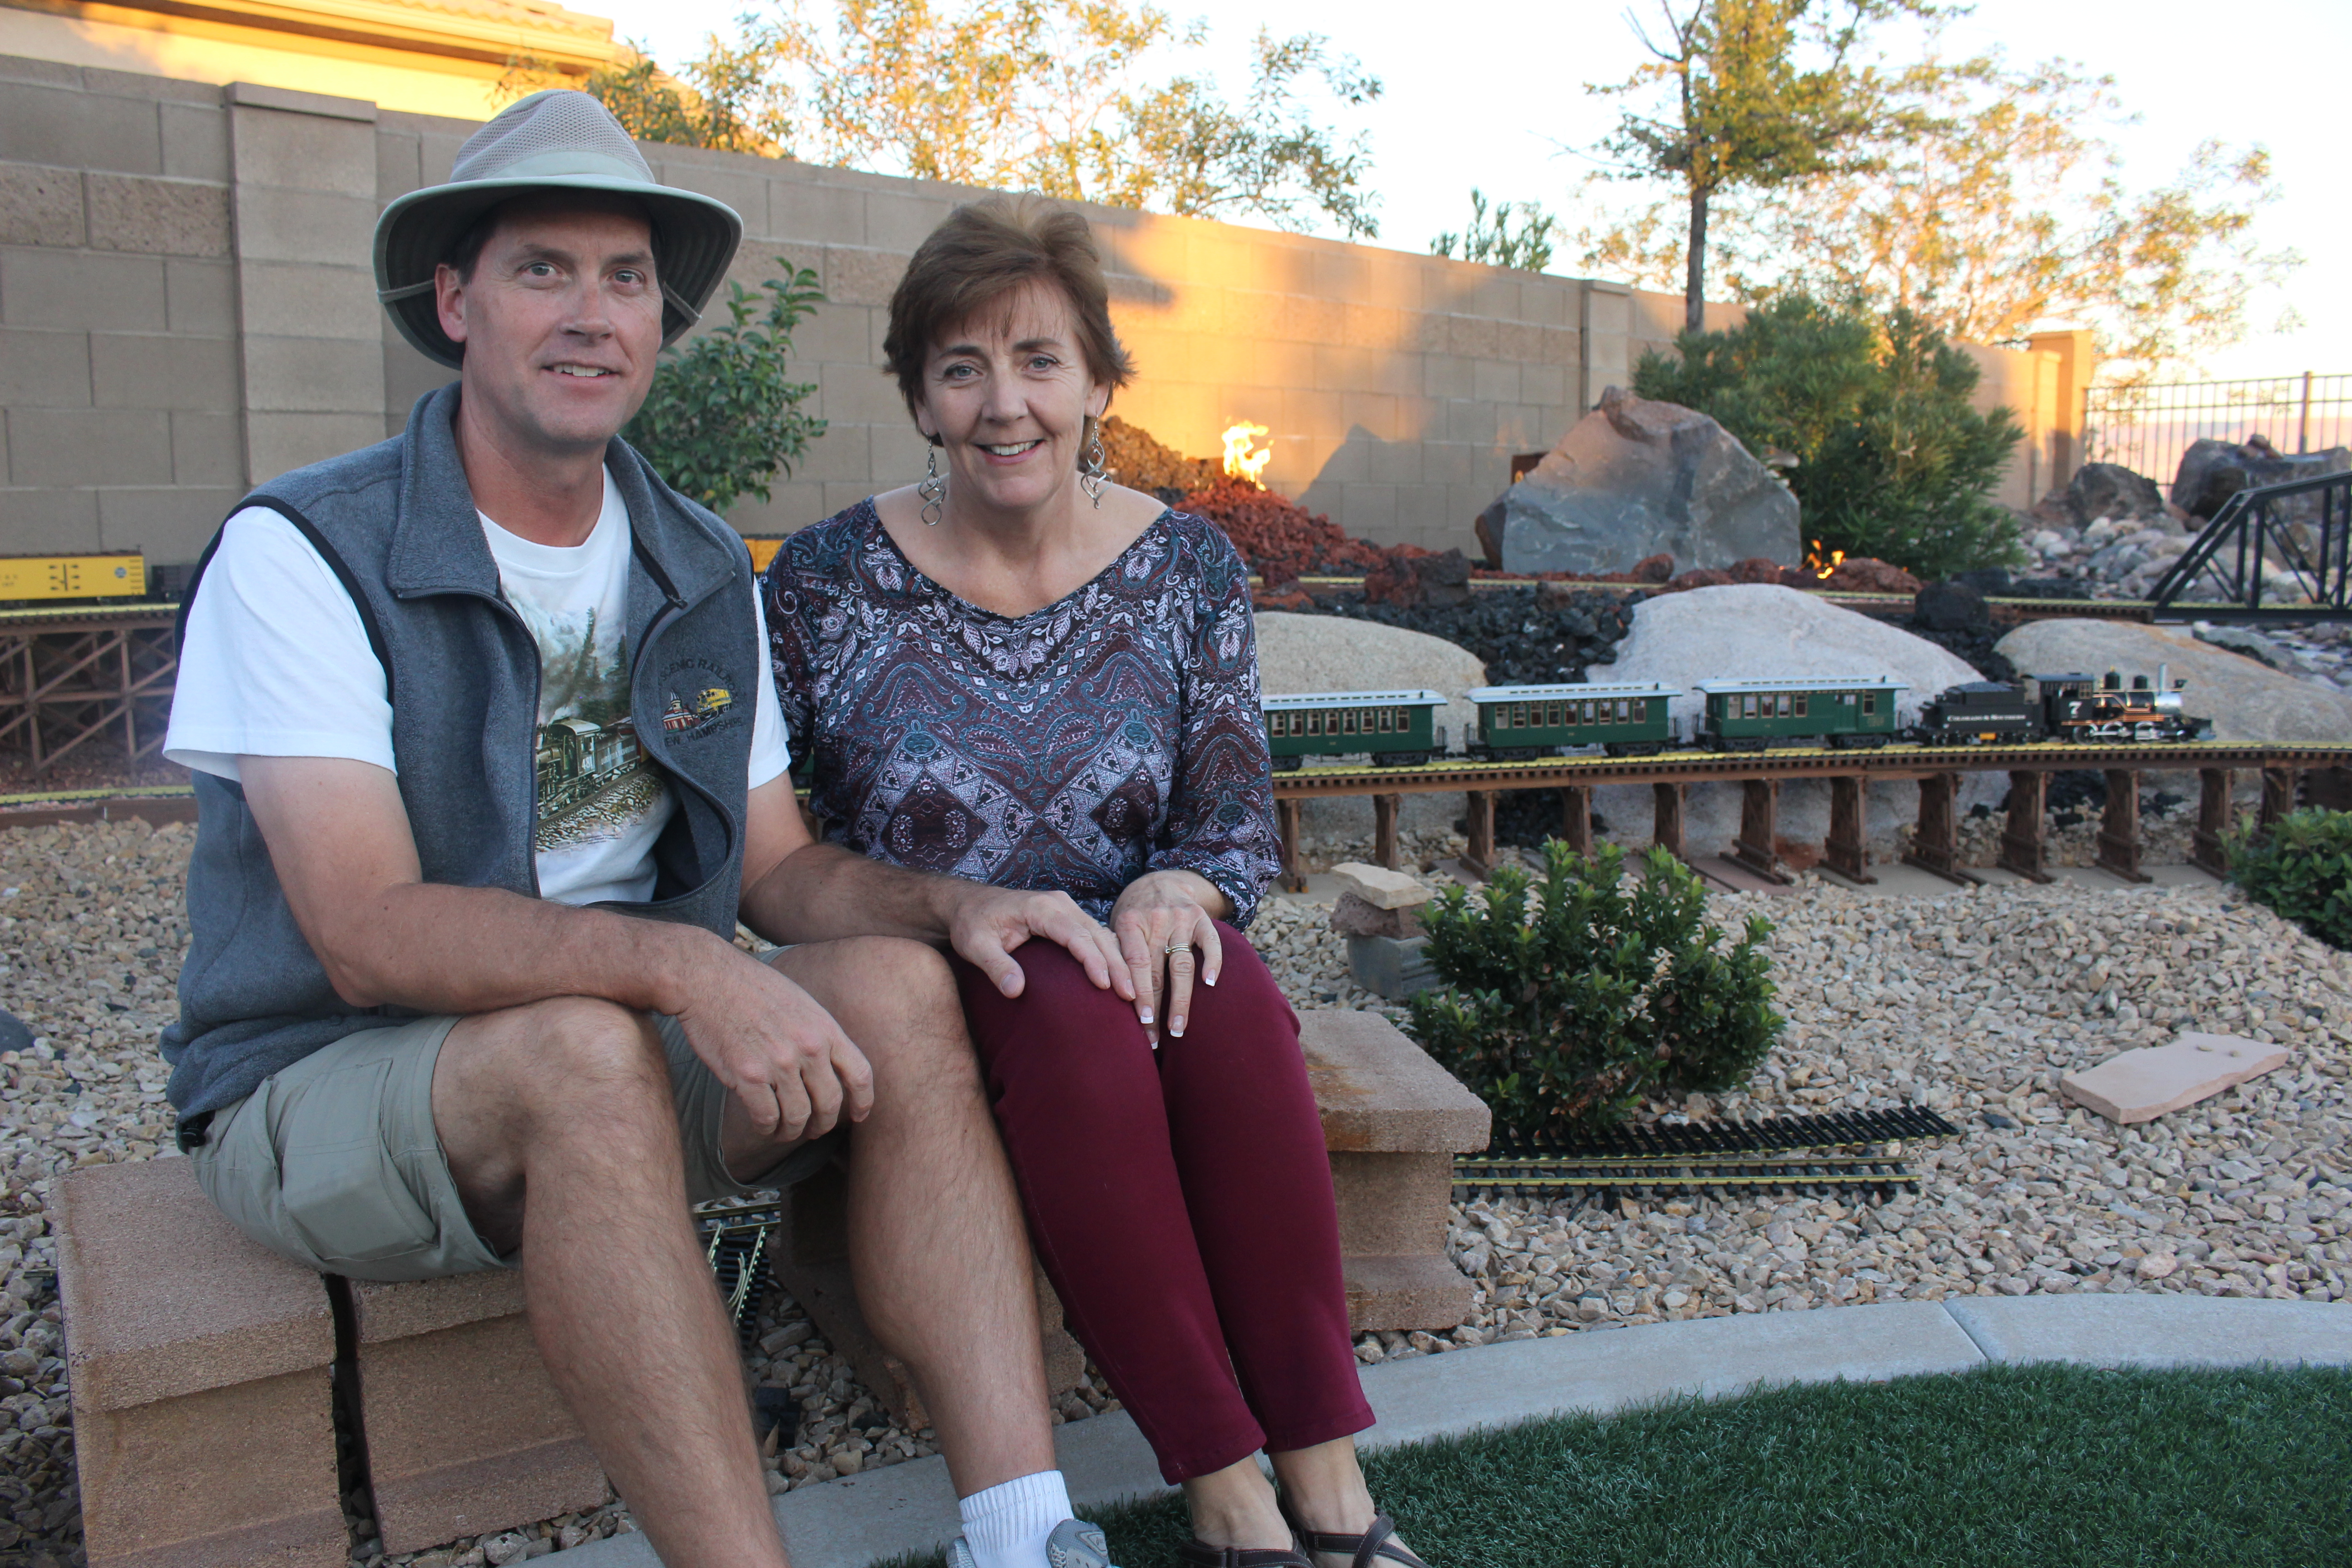 Tim Fitch and his wife pose for a photo near the garden scale model railroad in their backyard, Washington City, Utah, Nov. 11, 2016 | Photo by Joseph Witham, St. George News